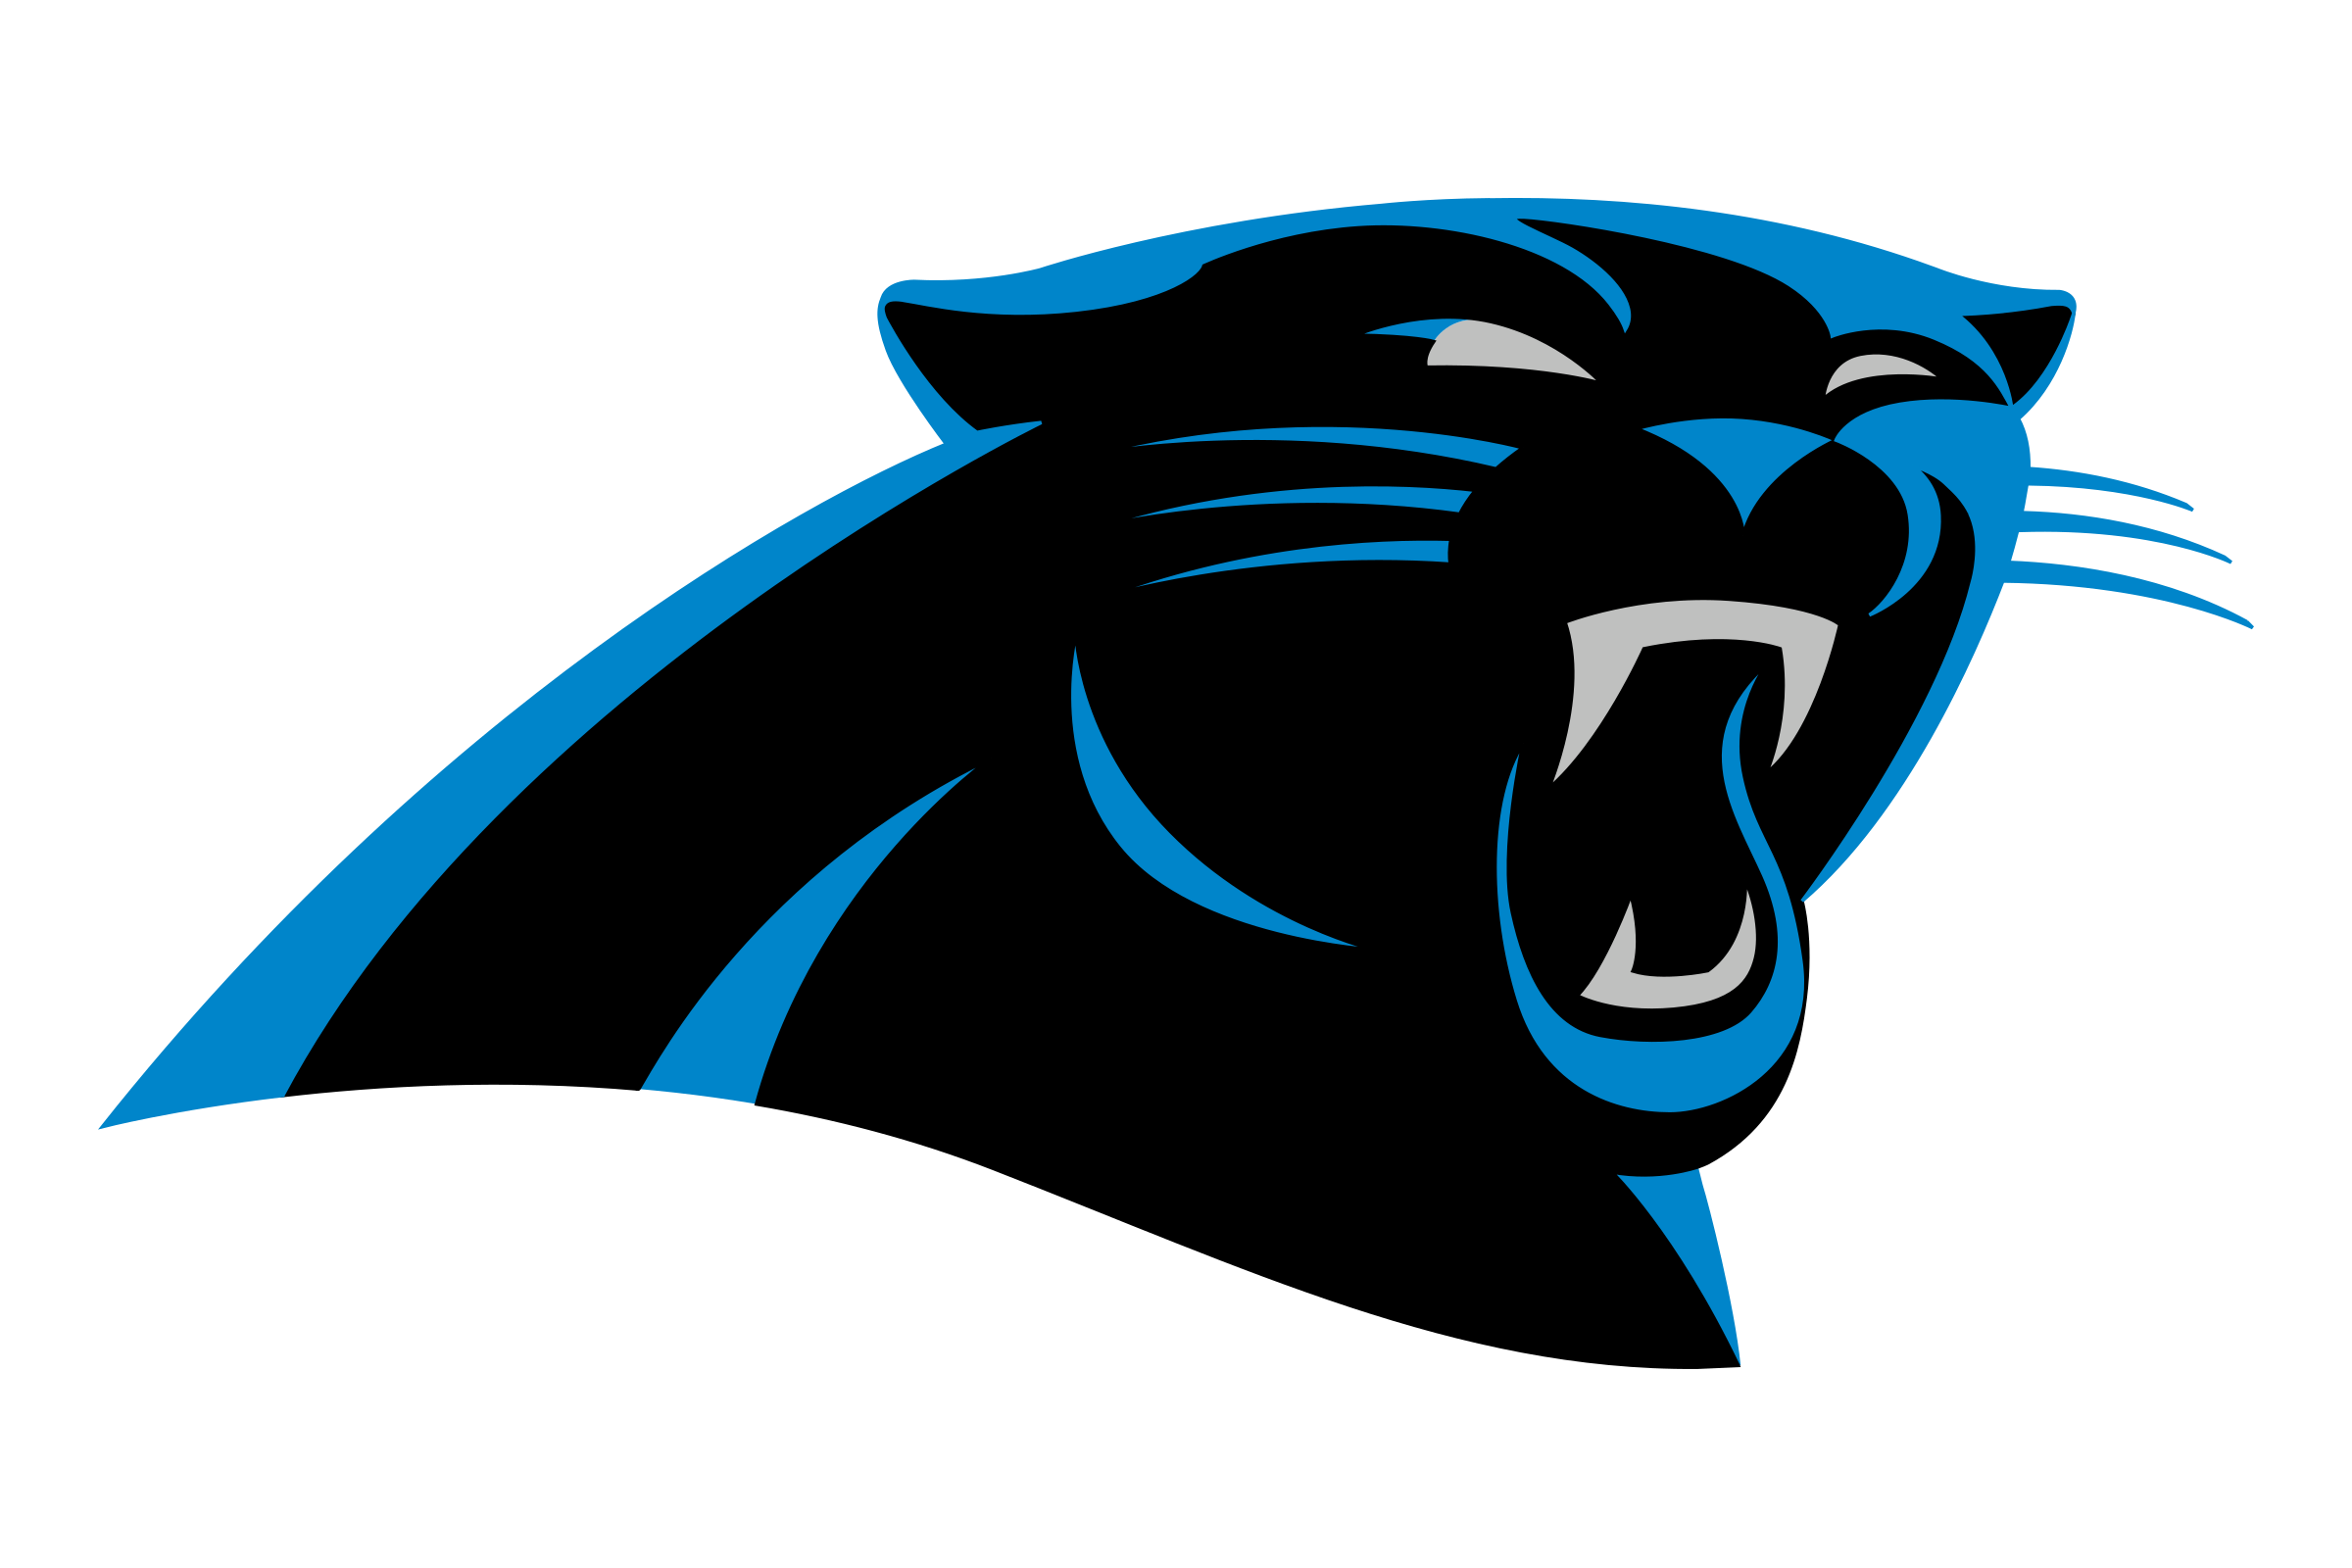 Carolina panthers logo png. Transparent svg vector freebie